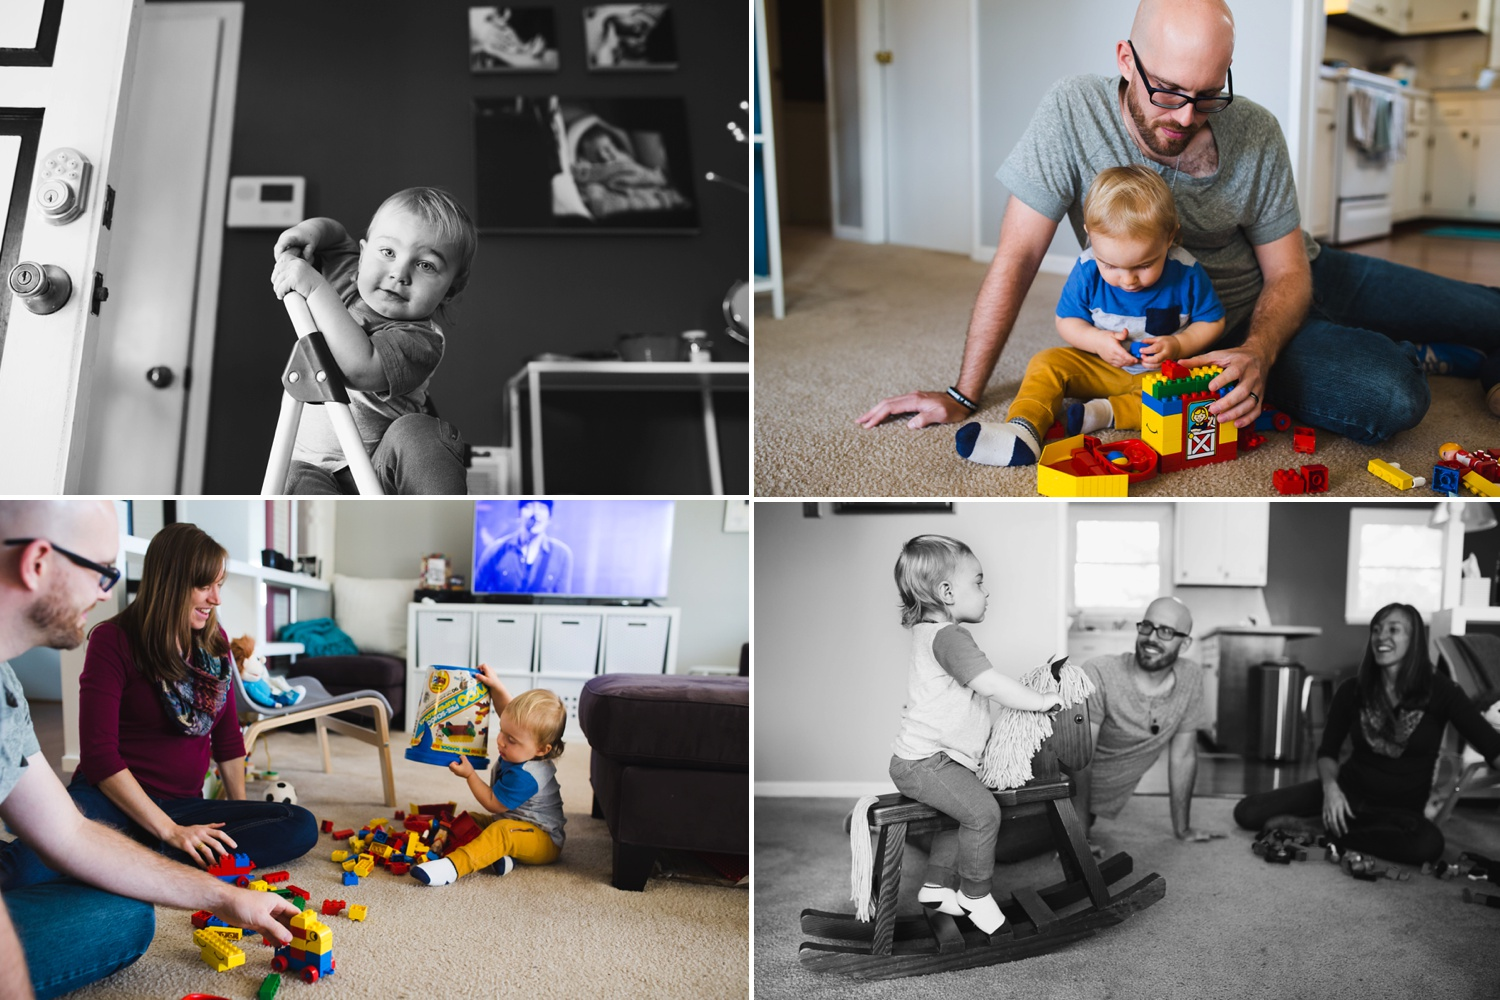 20171118_FamilySessionWithMick-LanghoffFamily-ChadLanghoff-AmberLanghoff-LanghoffCreative-MickSchultePhotograph-16-photo.jpg